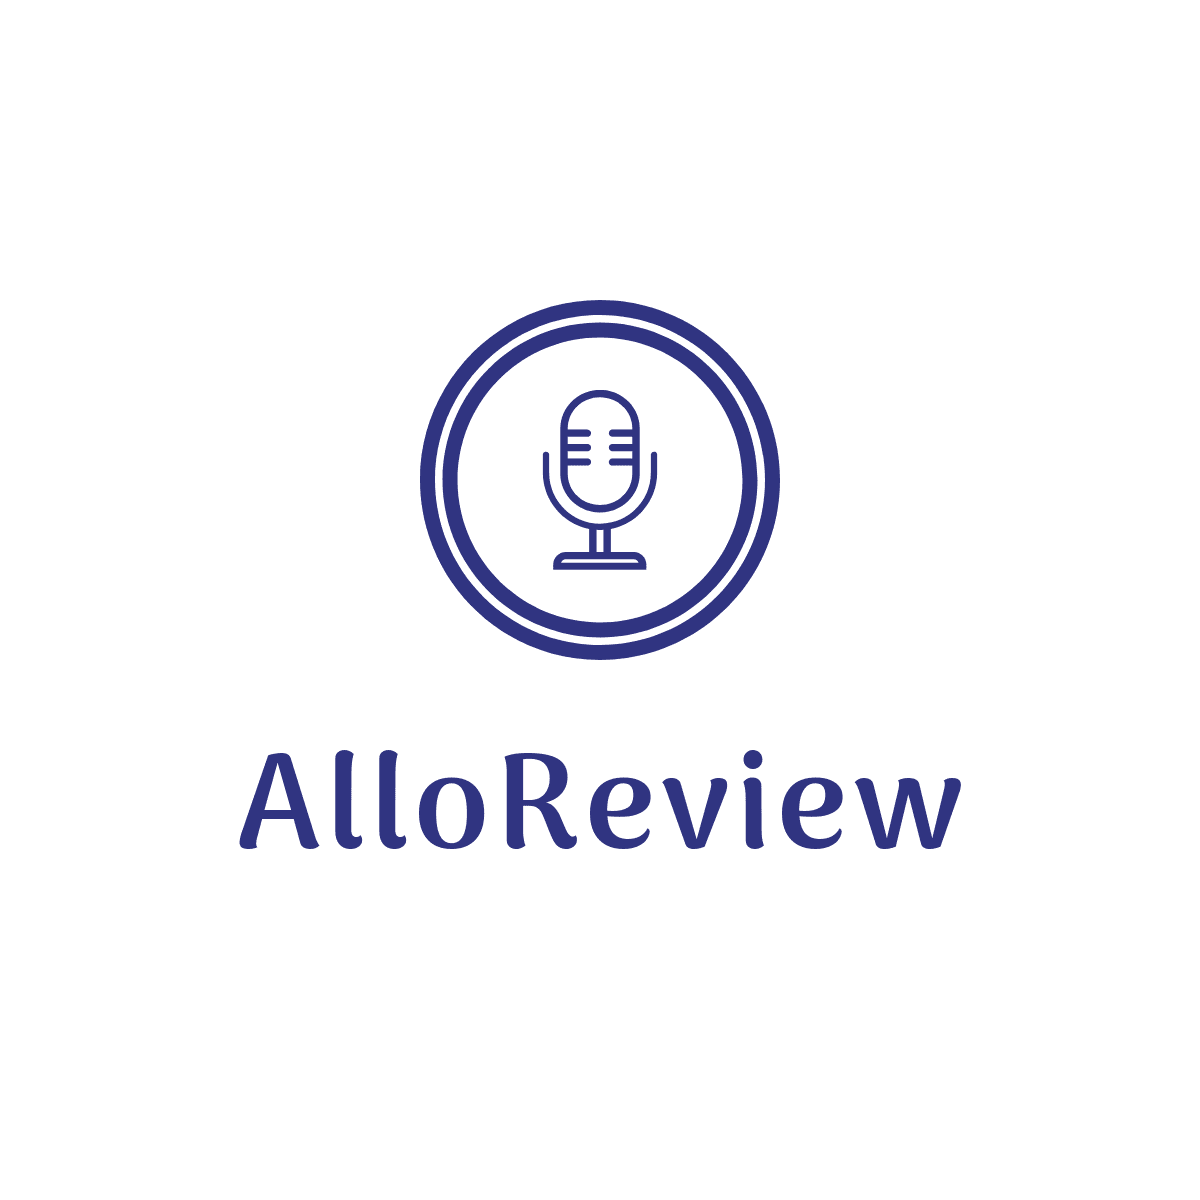 AlloReview